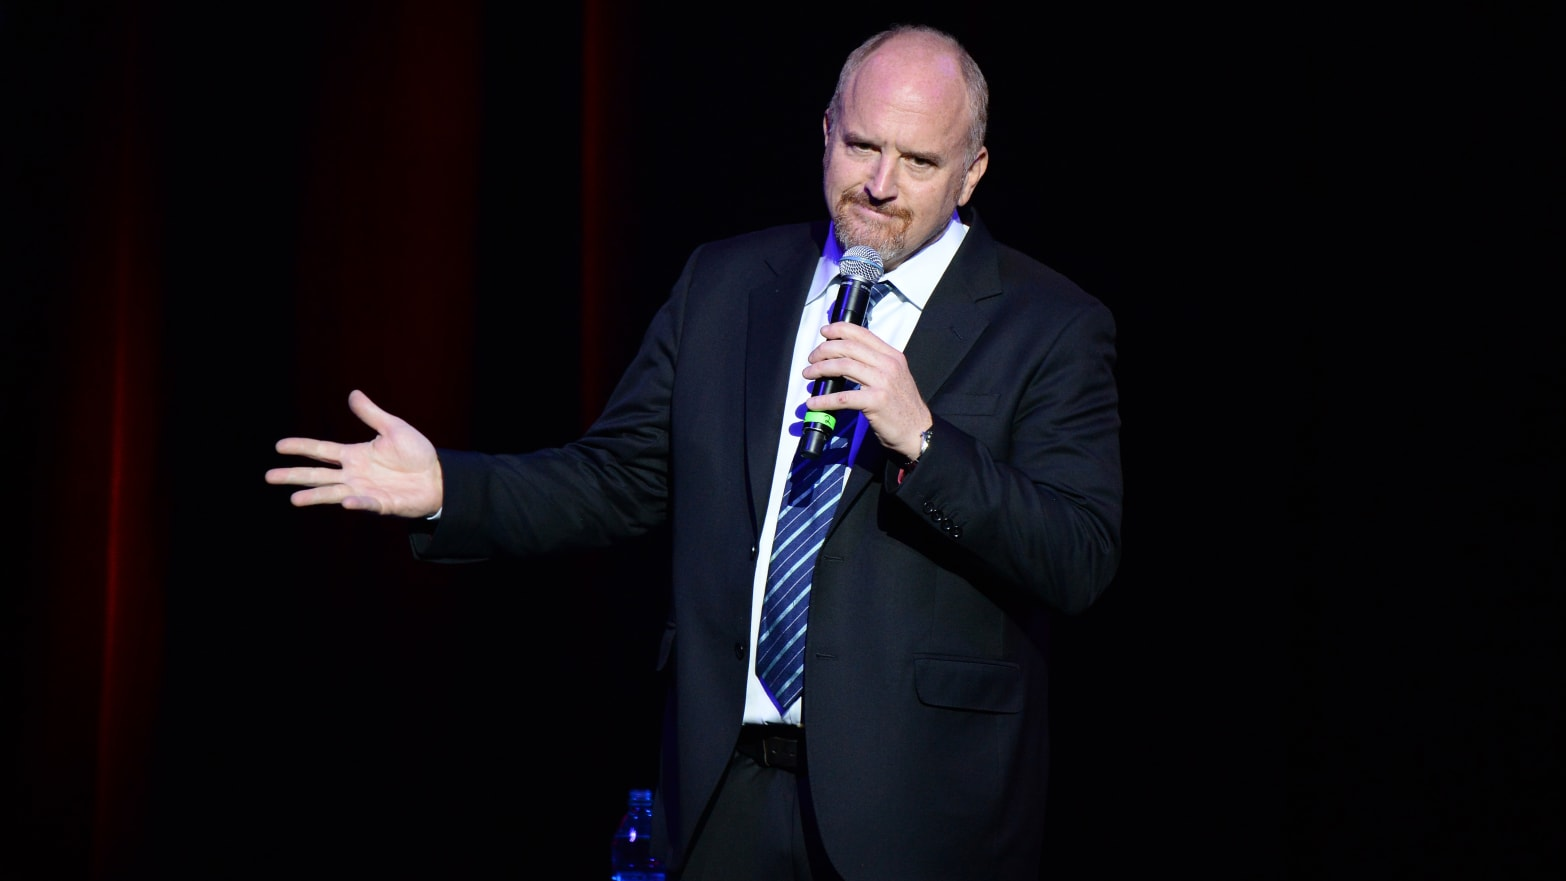 Louis C.K.'s Leaked Comedy Set Panders to the Alt-Right